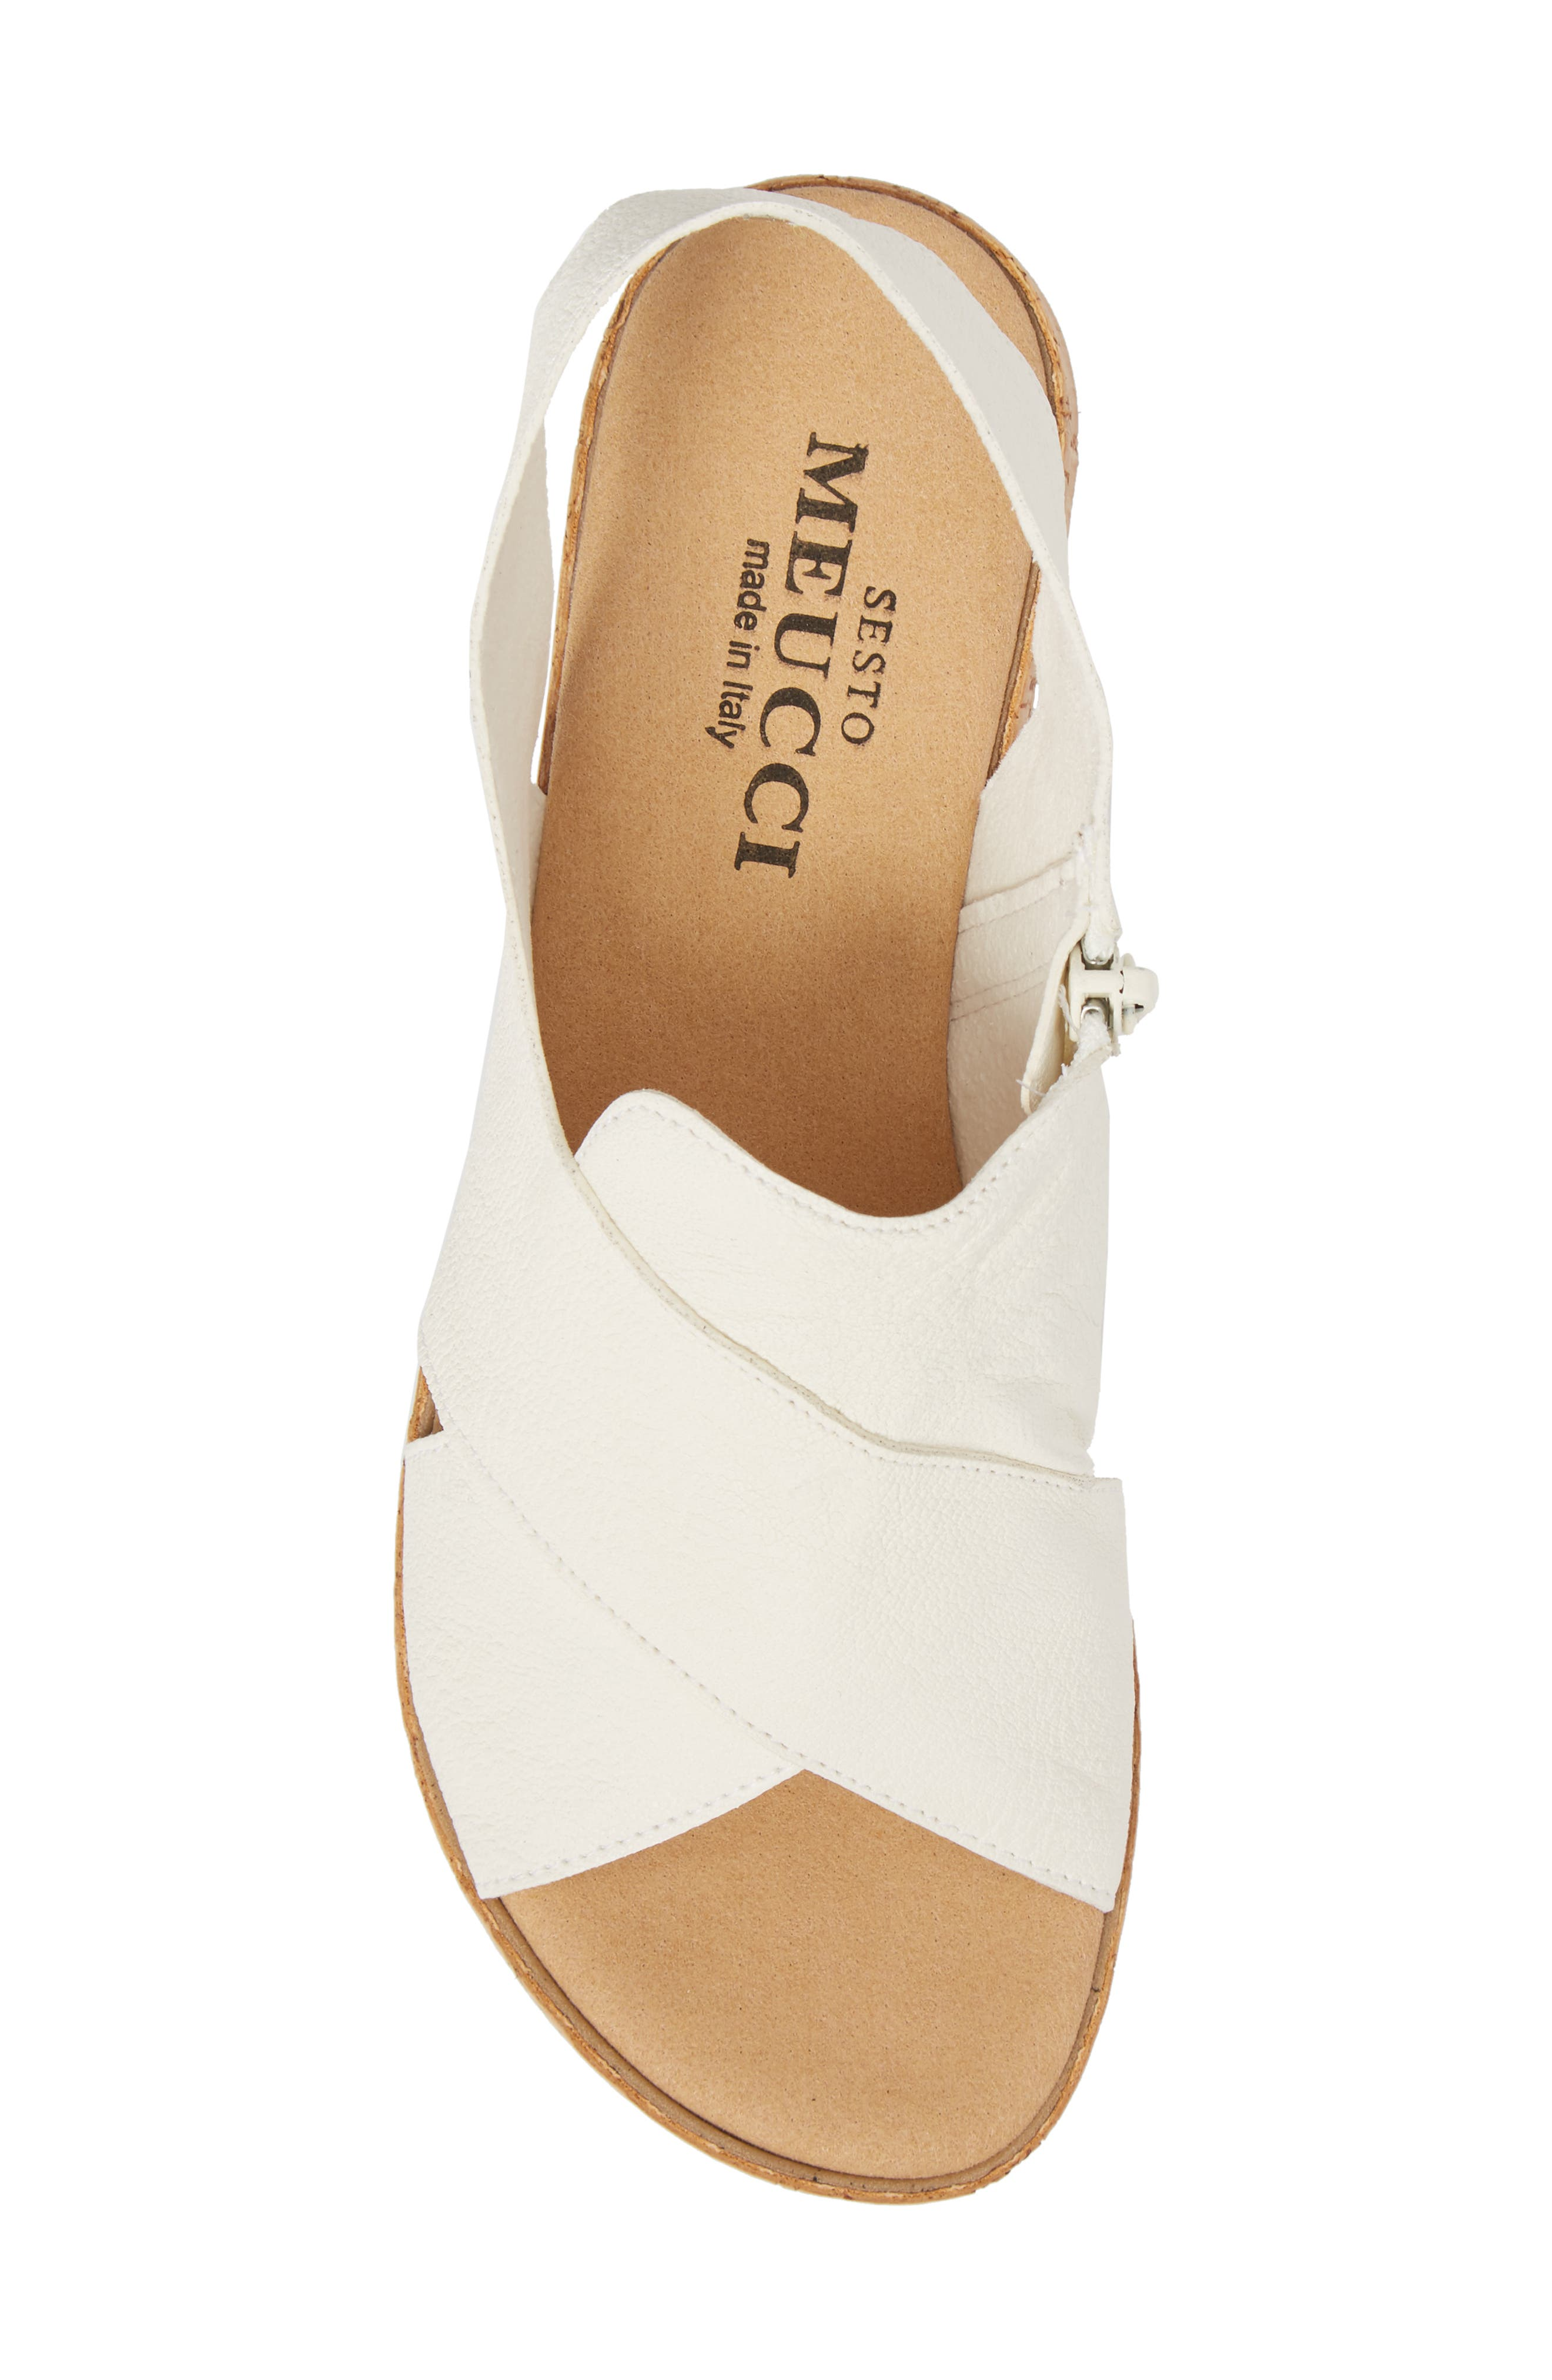 Sylke Sandal,                             Alternate thumbnail 5, color,                             WHITE LEATHER